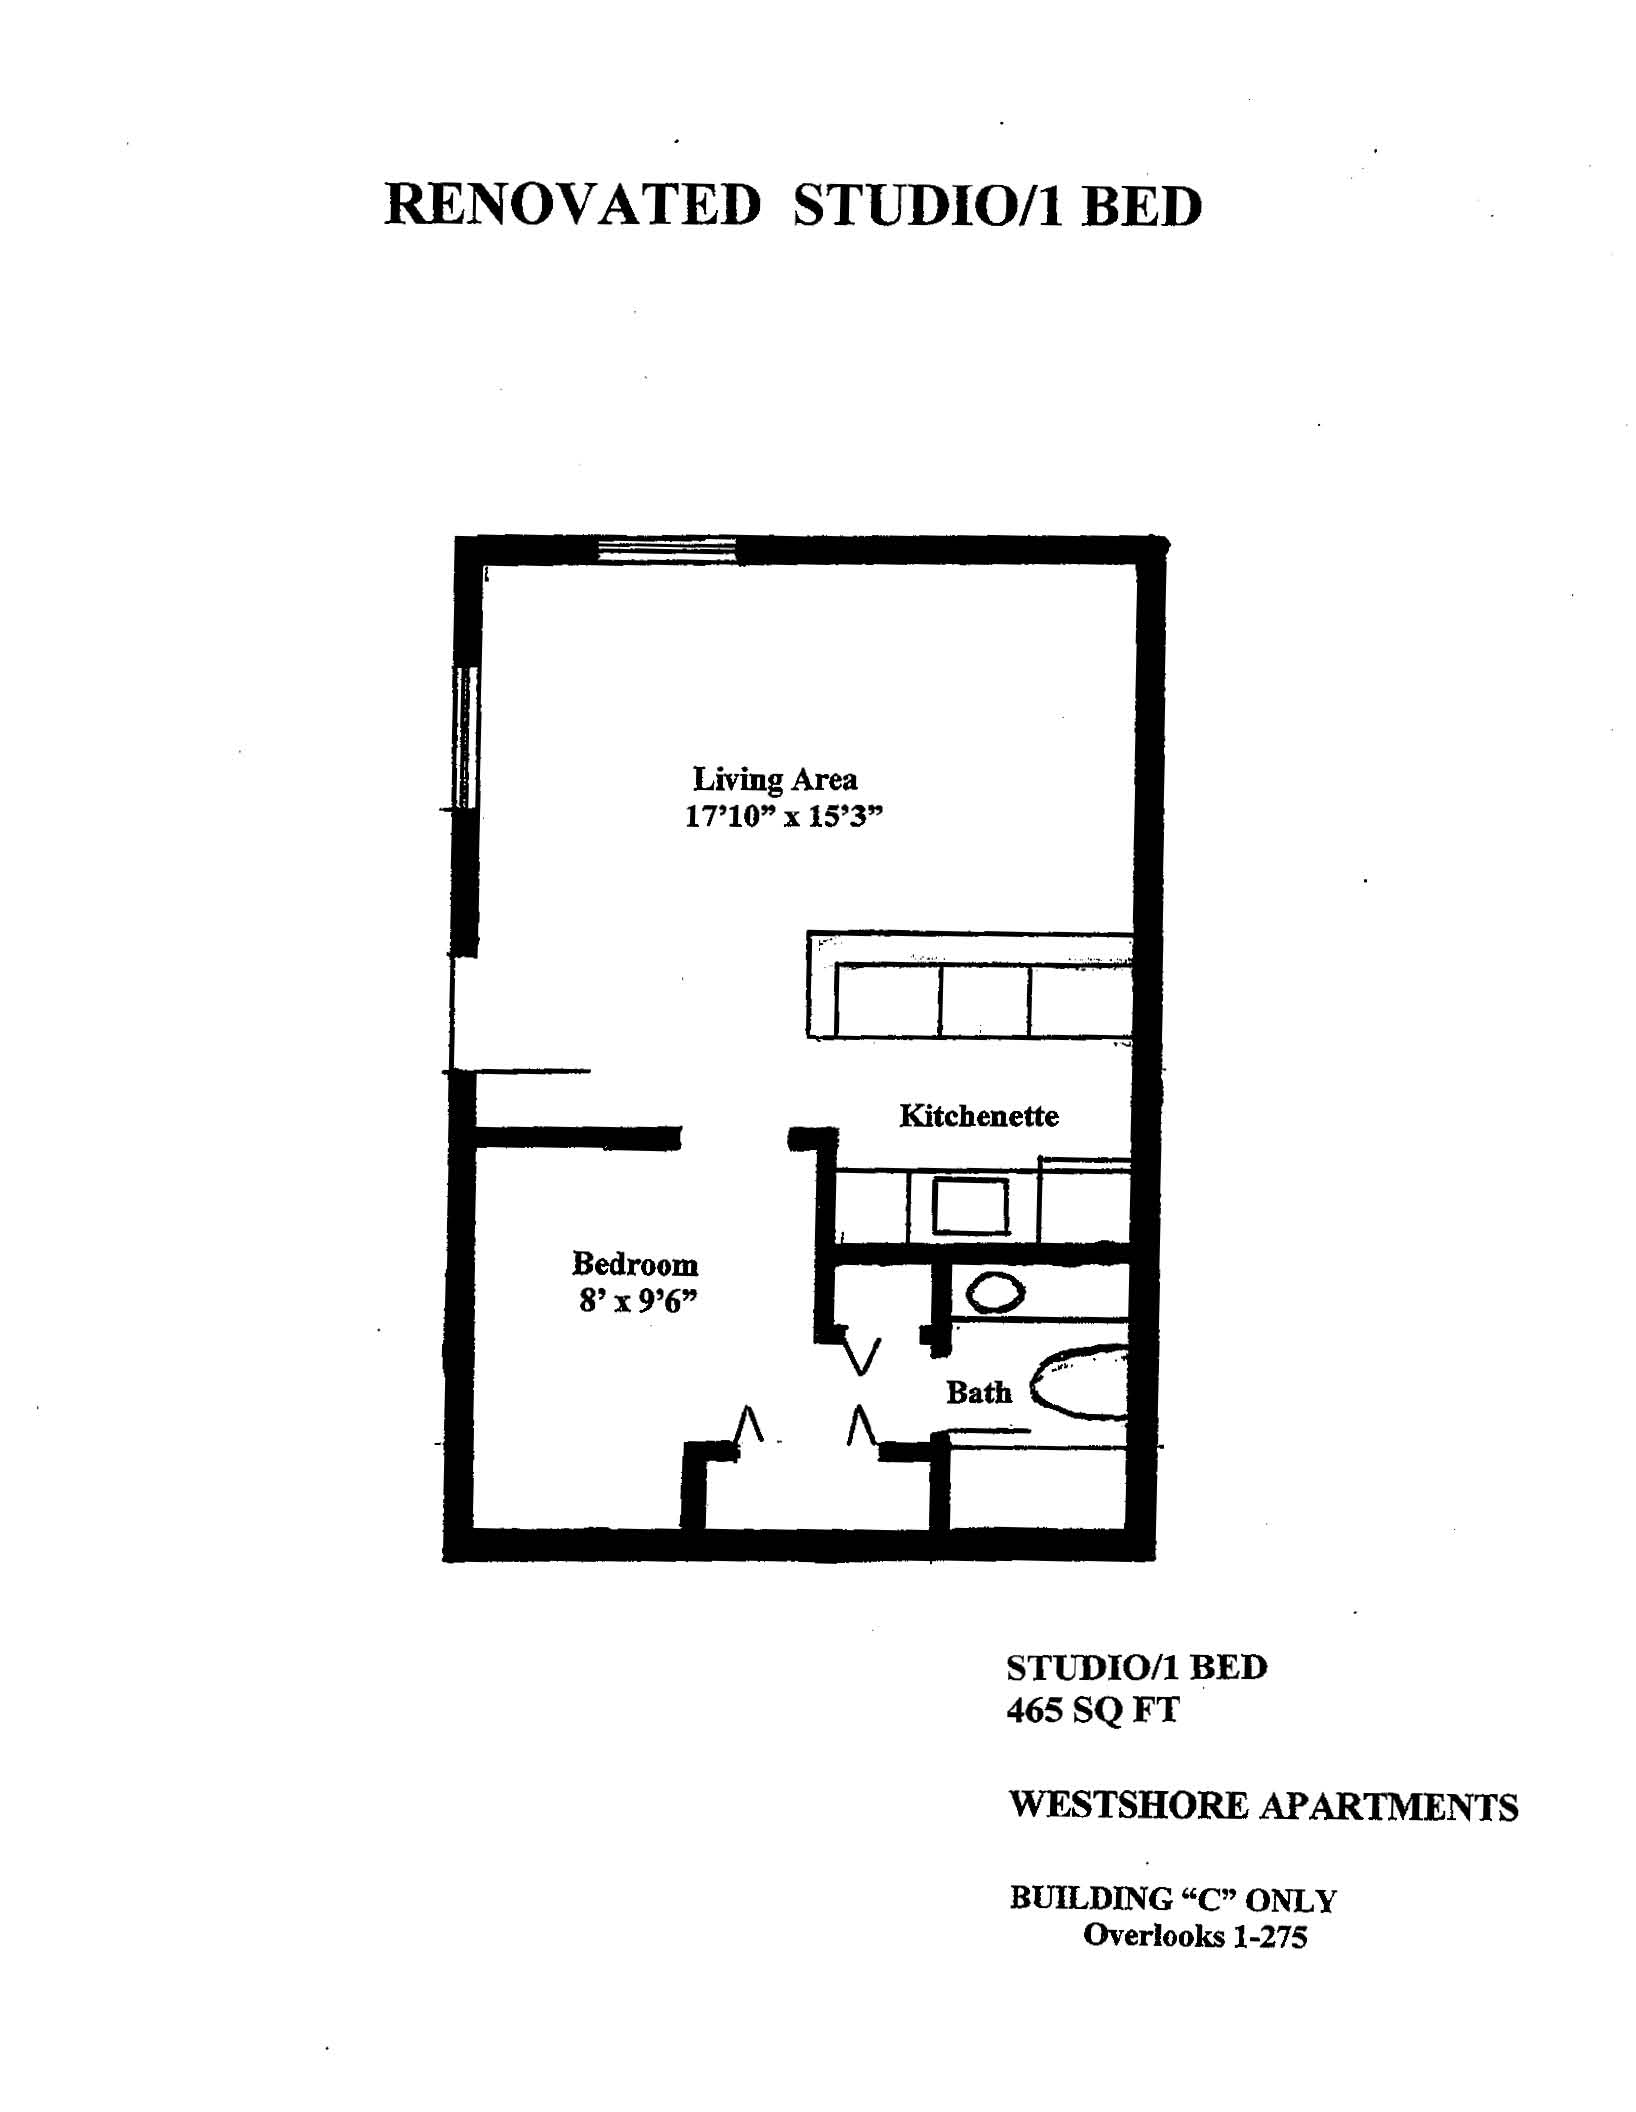 1 bedroom studio floor plans for 1 bedroom plan